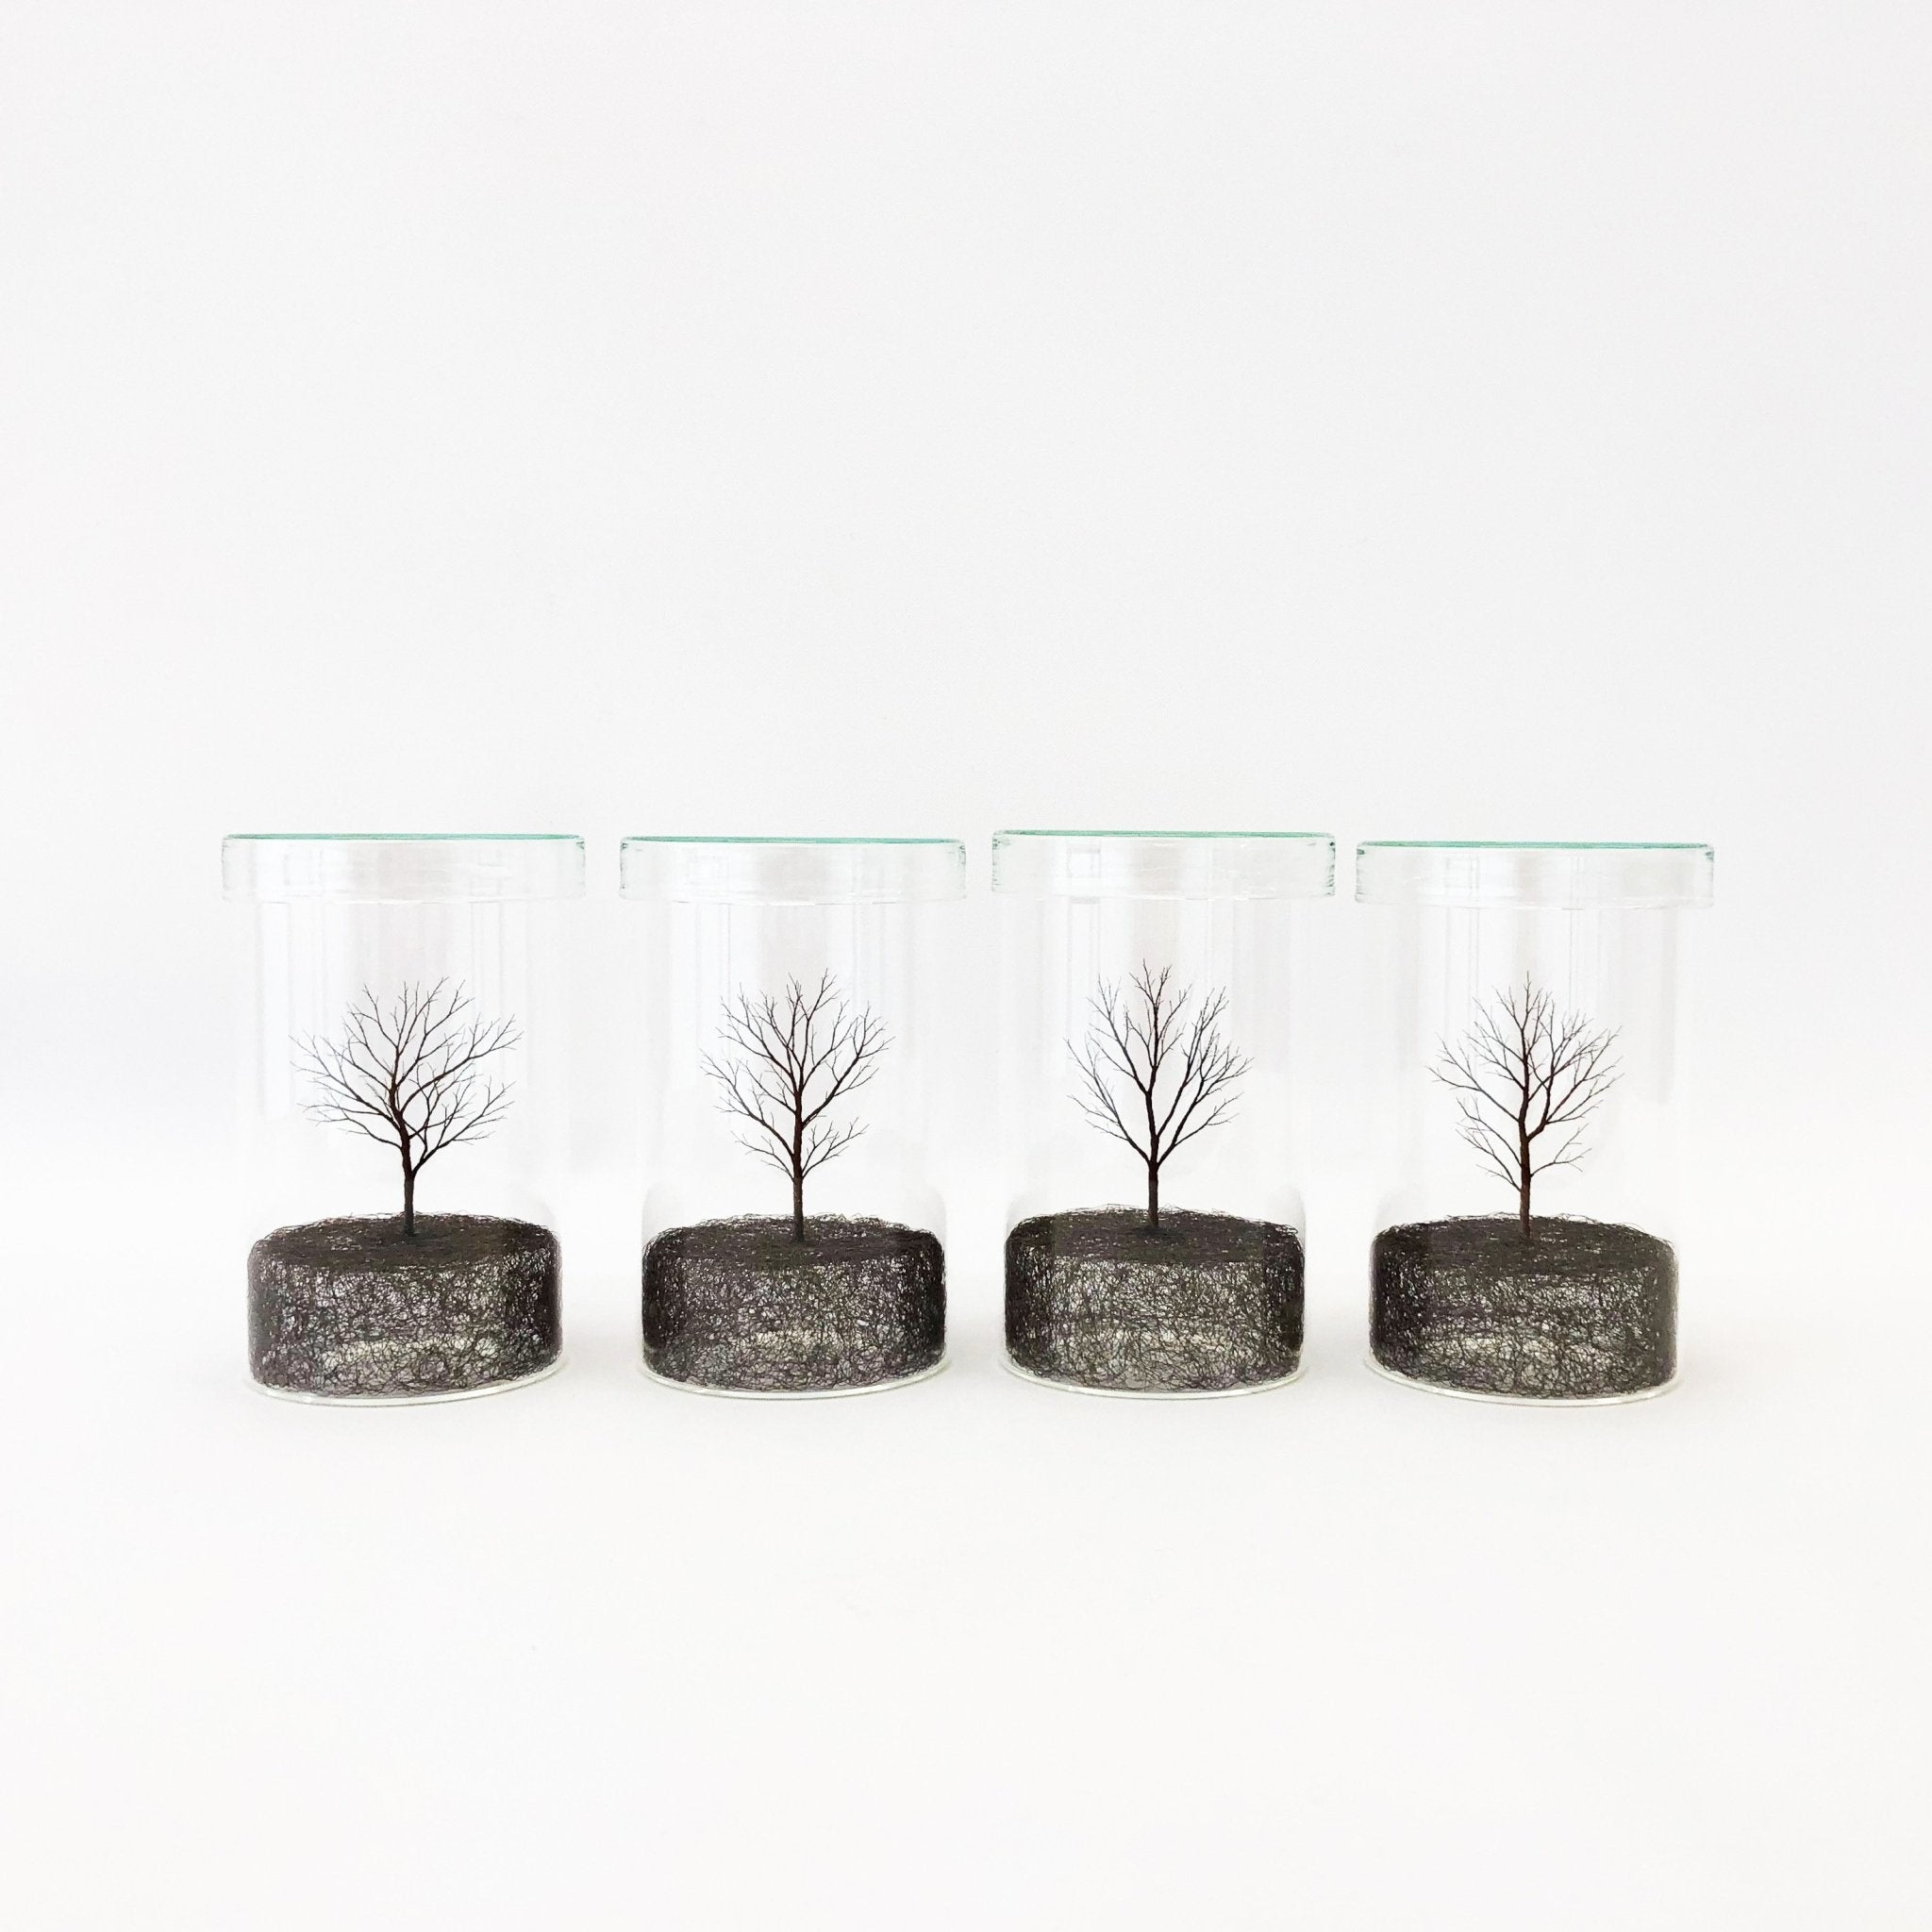 Copper Wire Trees #1 - 4 (2020) by Mitsuru Koga - tortoise general store